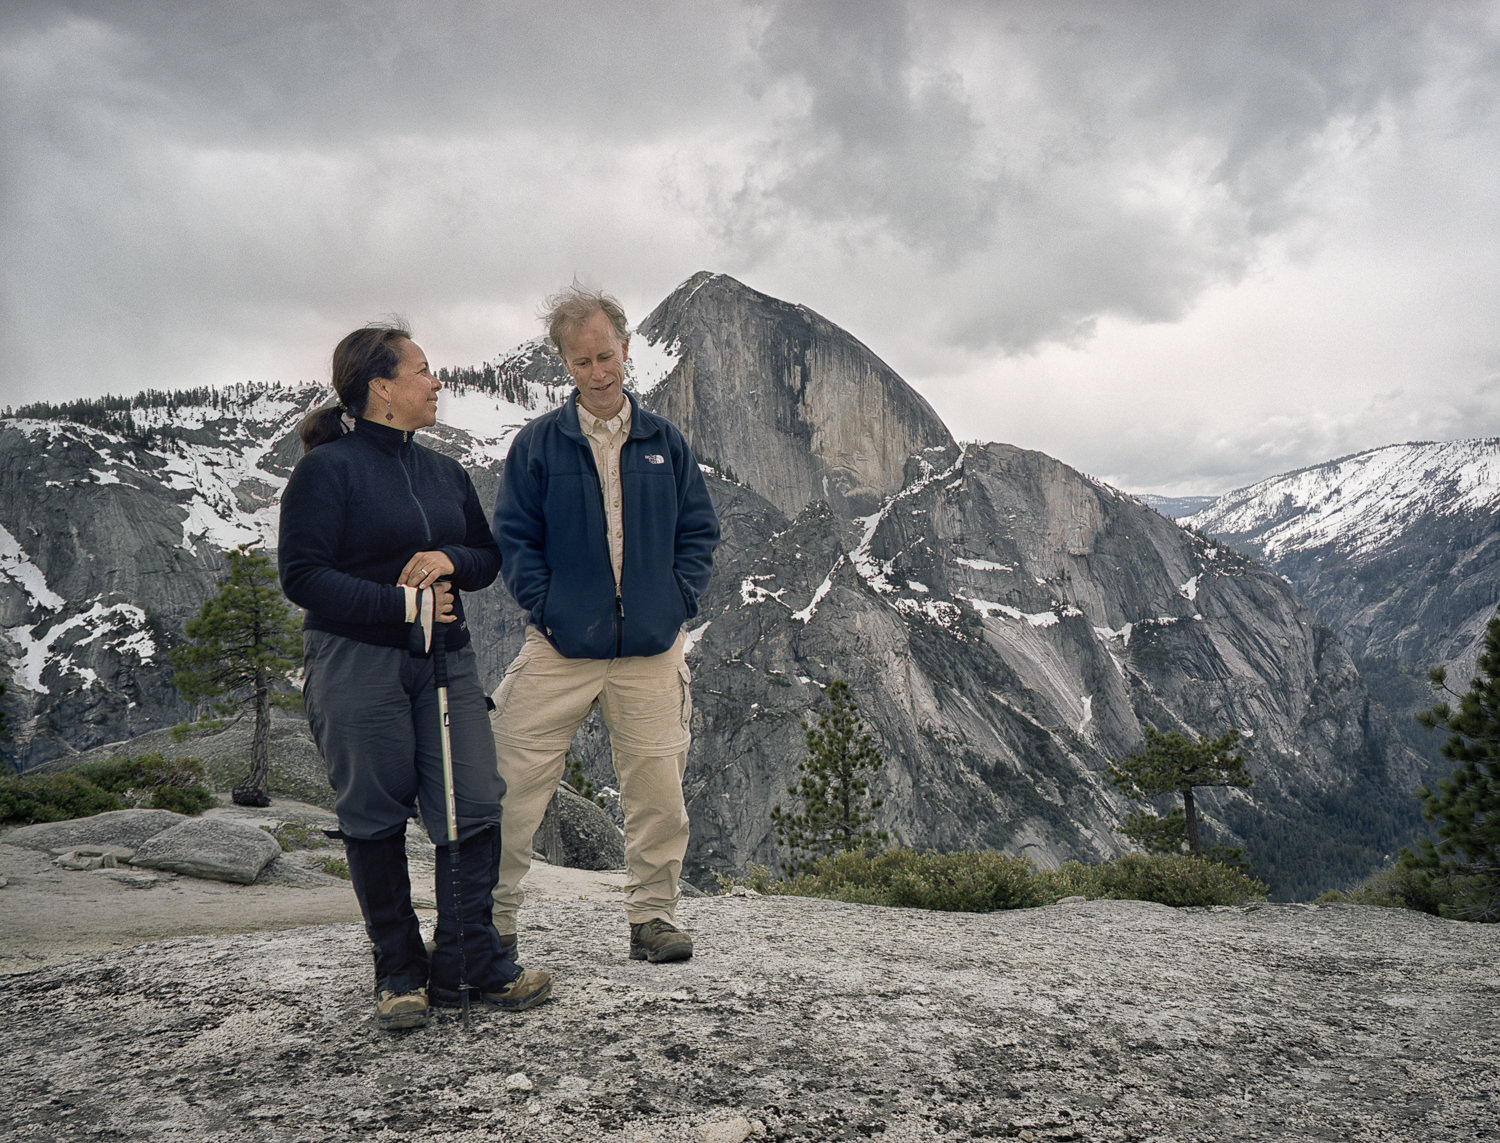 Half Dome, Yosemite National Park. Shot with the camera's built-in self-timer